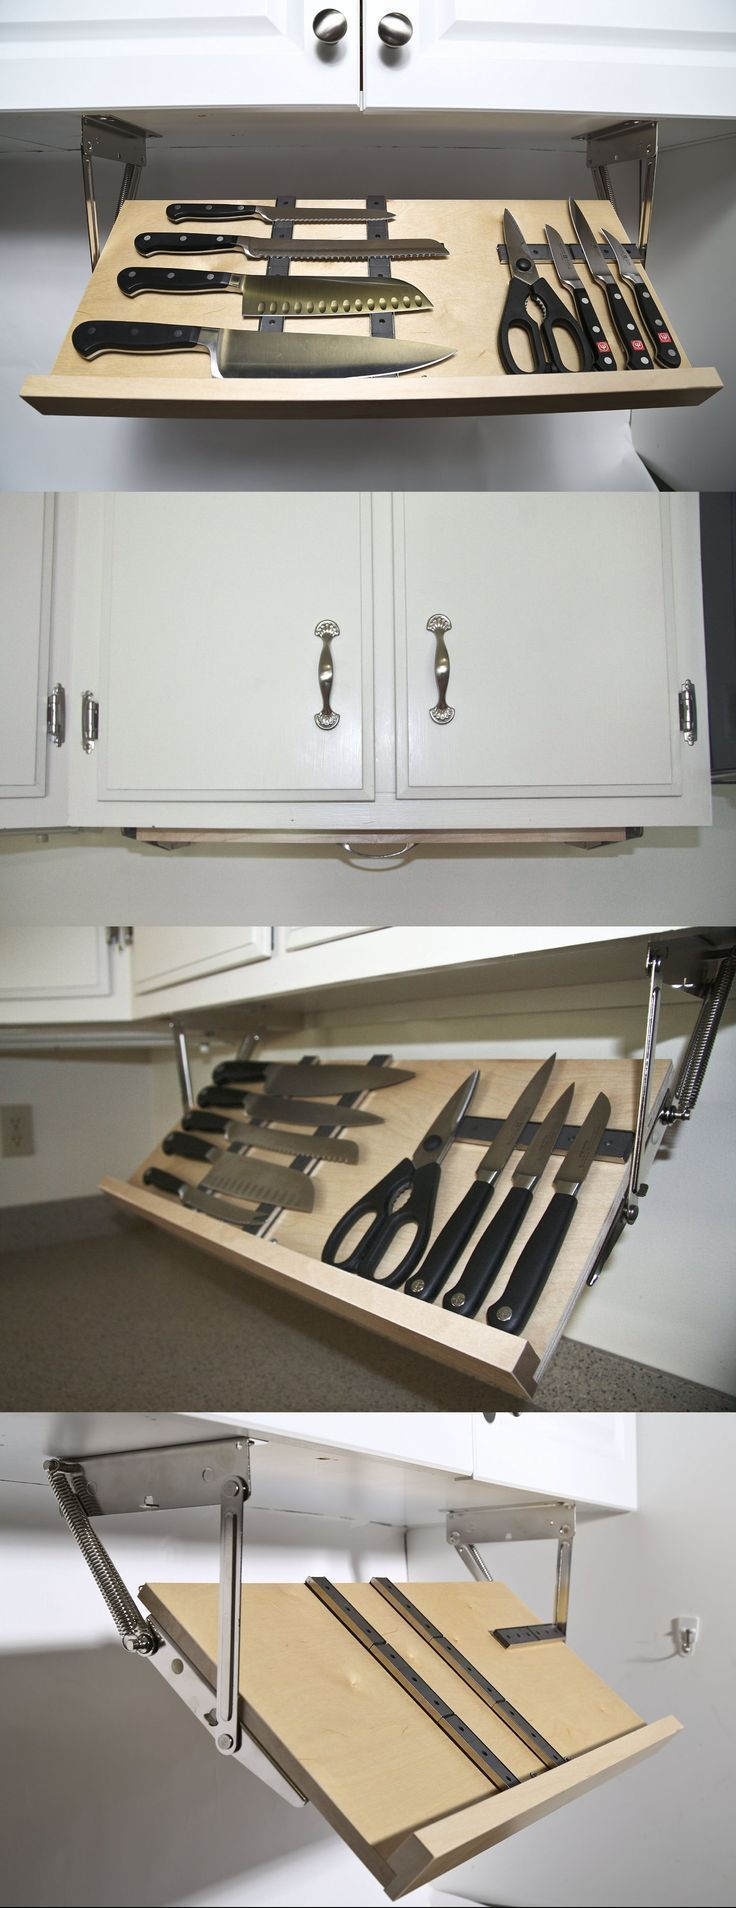 Undercabinet knife storage Love this Seems much safer van